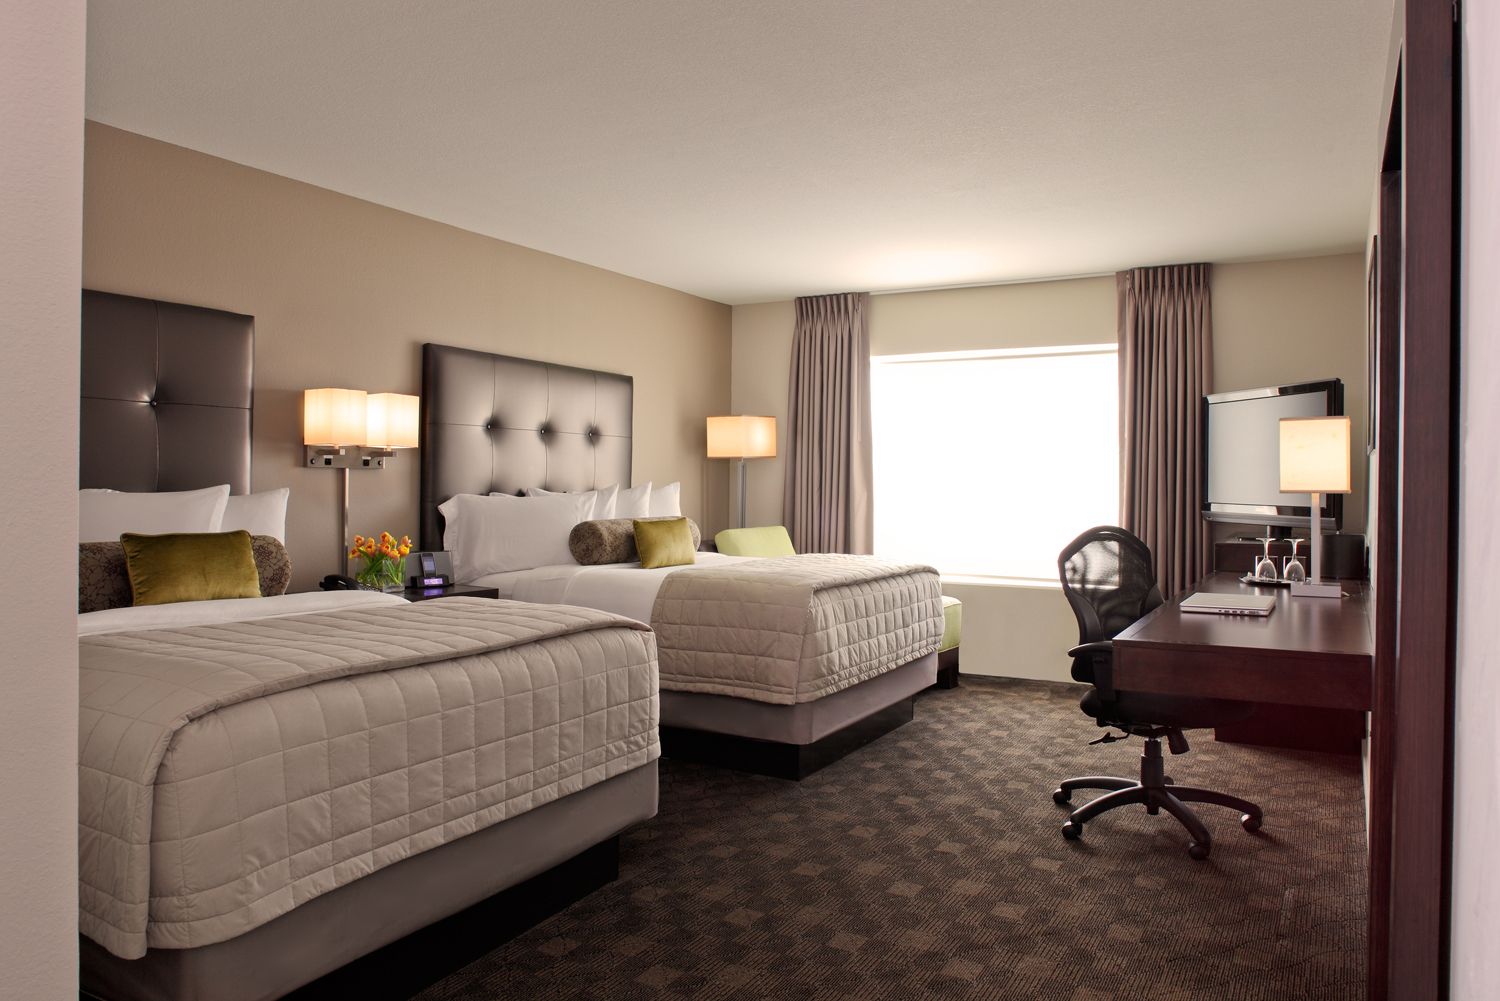 Avia Hotel - Houston, TX: Bed Styling